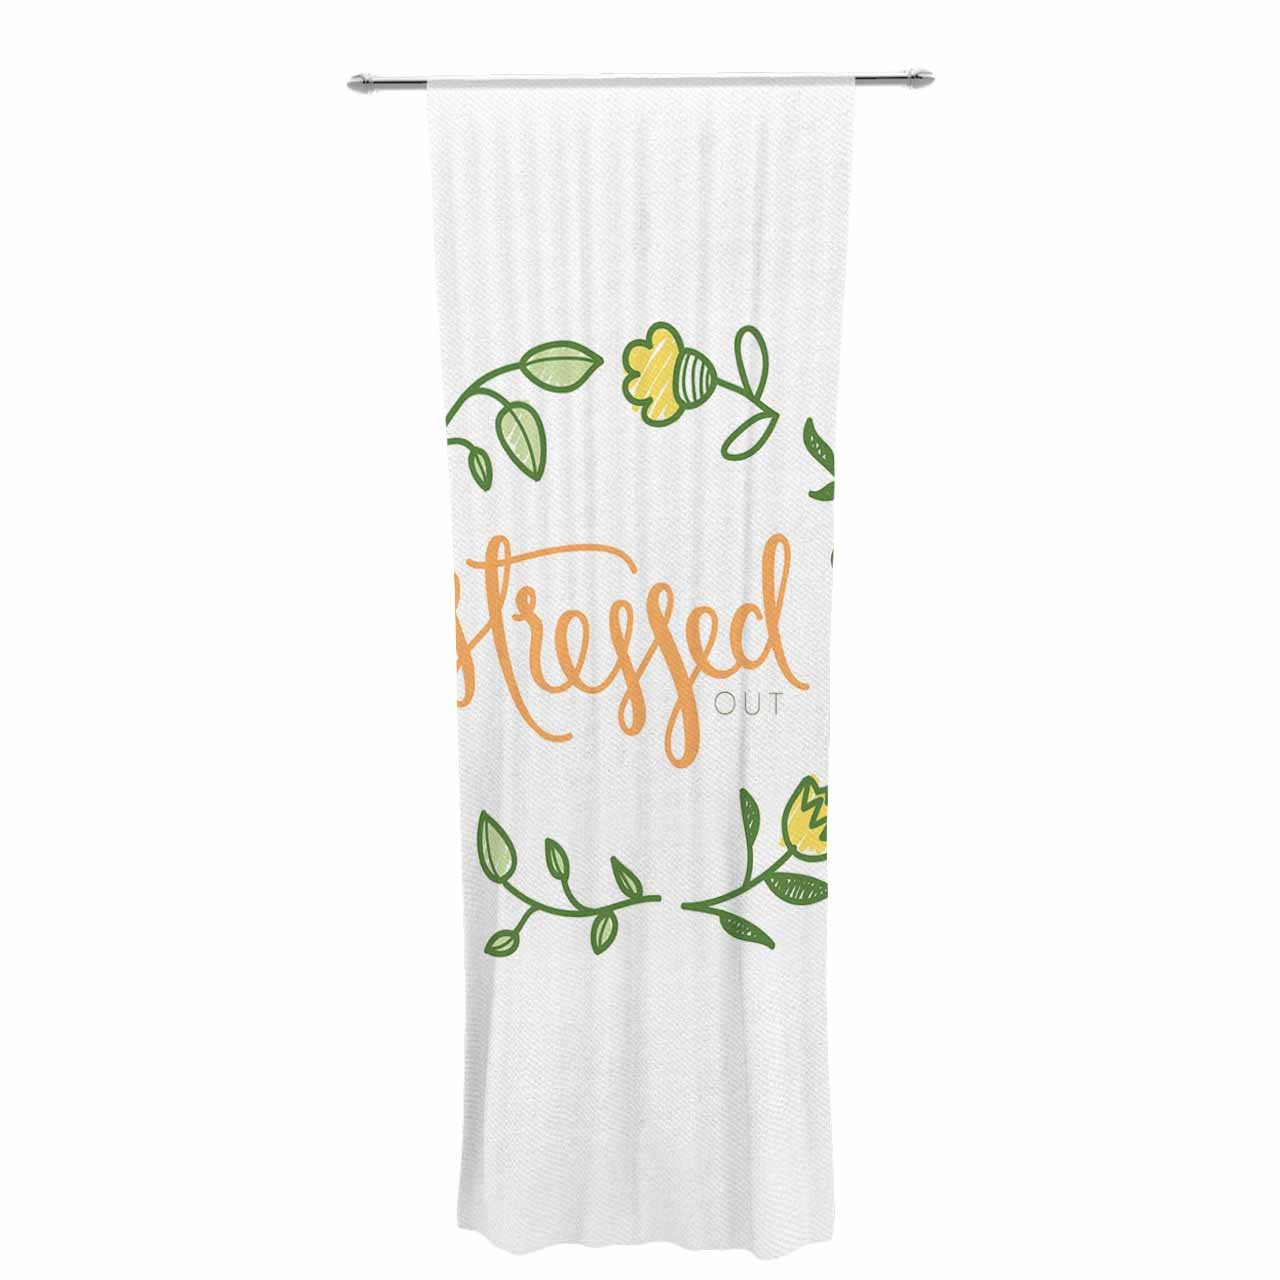 30 x 84 Sheer Curtains Kess InHouse Busy Bree Stressed Out Green Floral Decorative Set